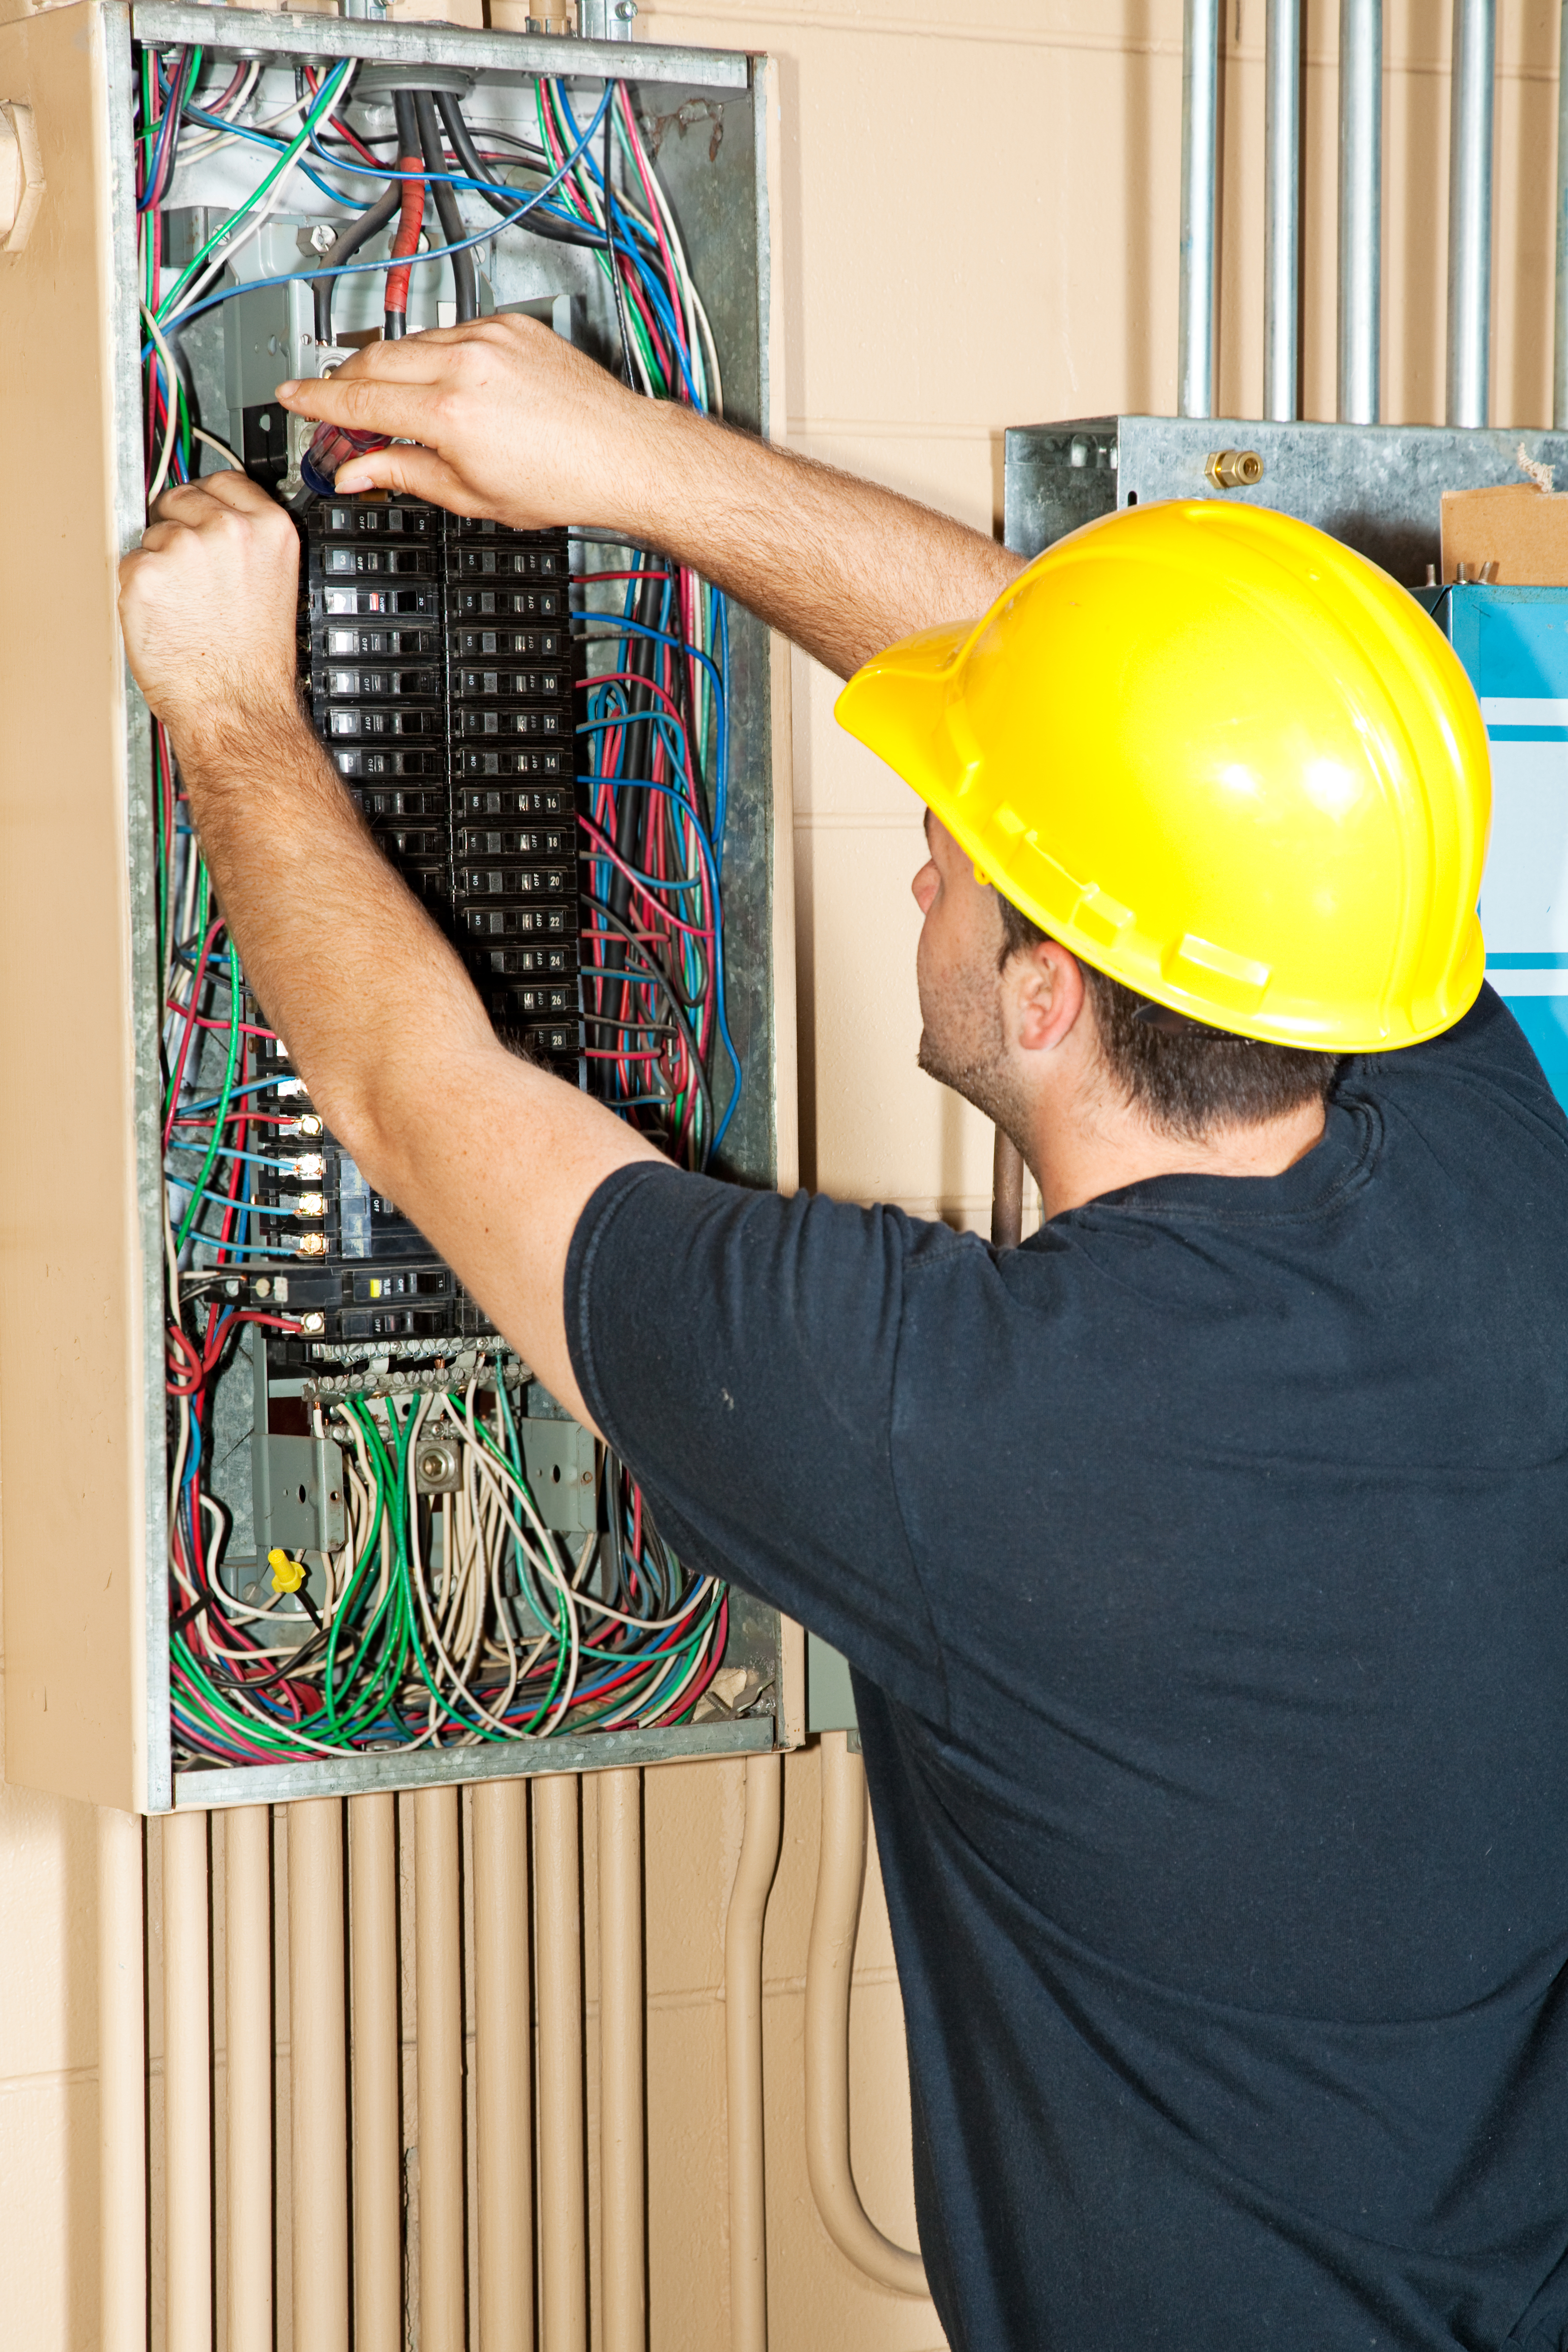 Aaa Bishop Electric The Woodlands Tx Electrician Electrical Wiring In Home Circuit Breaker Box Volt Fuse Replacement